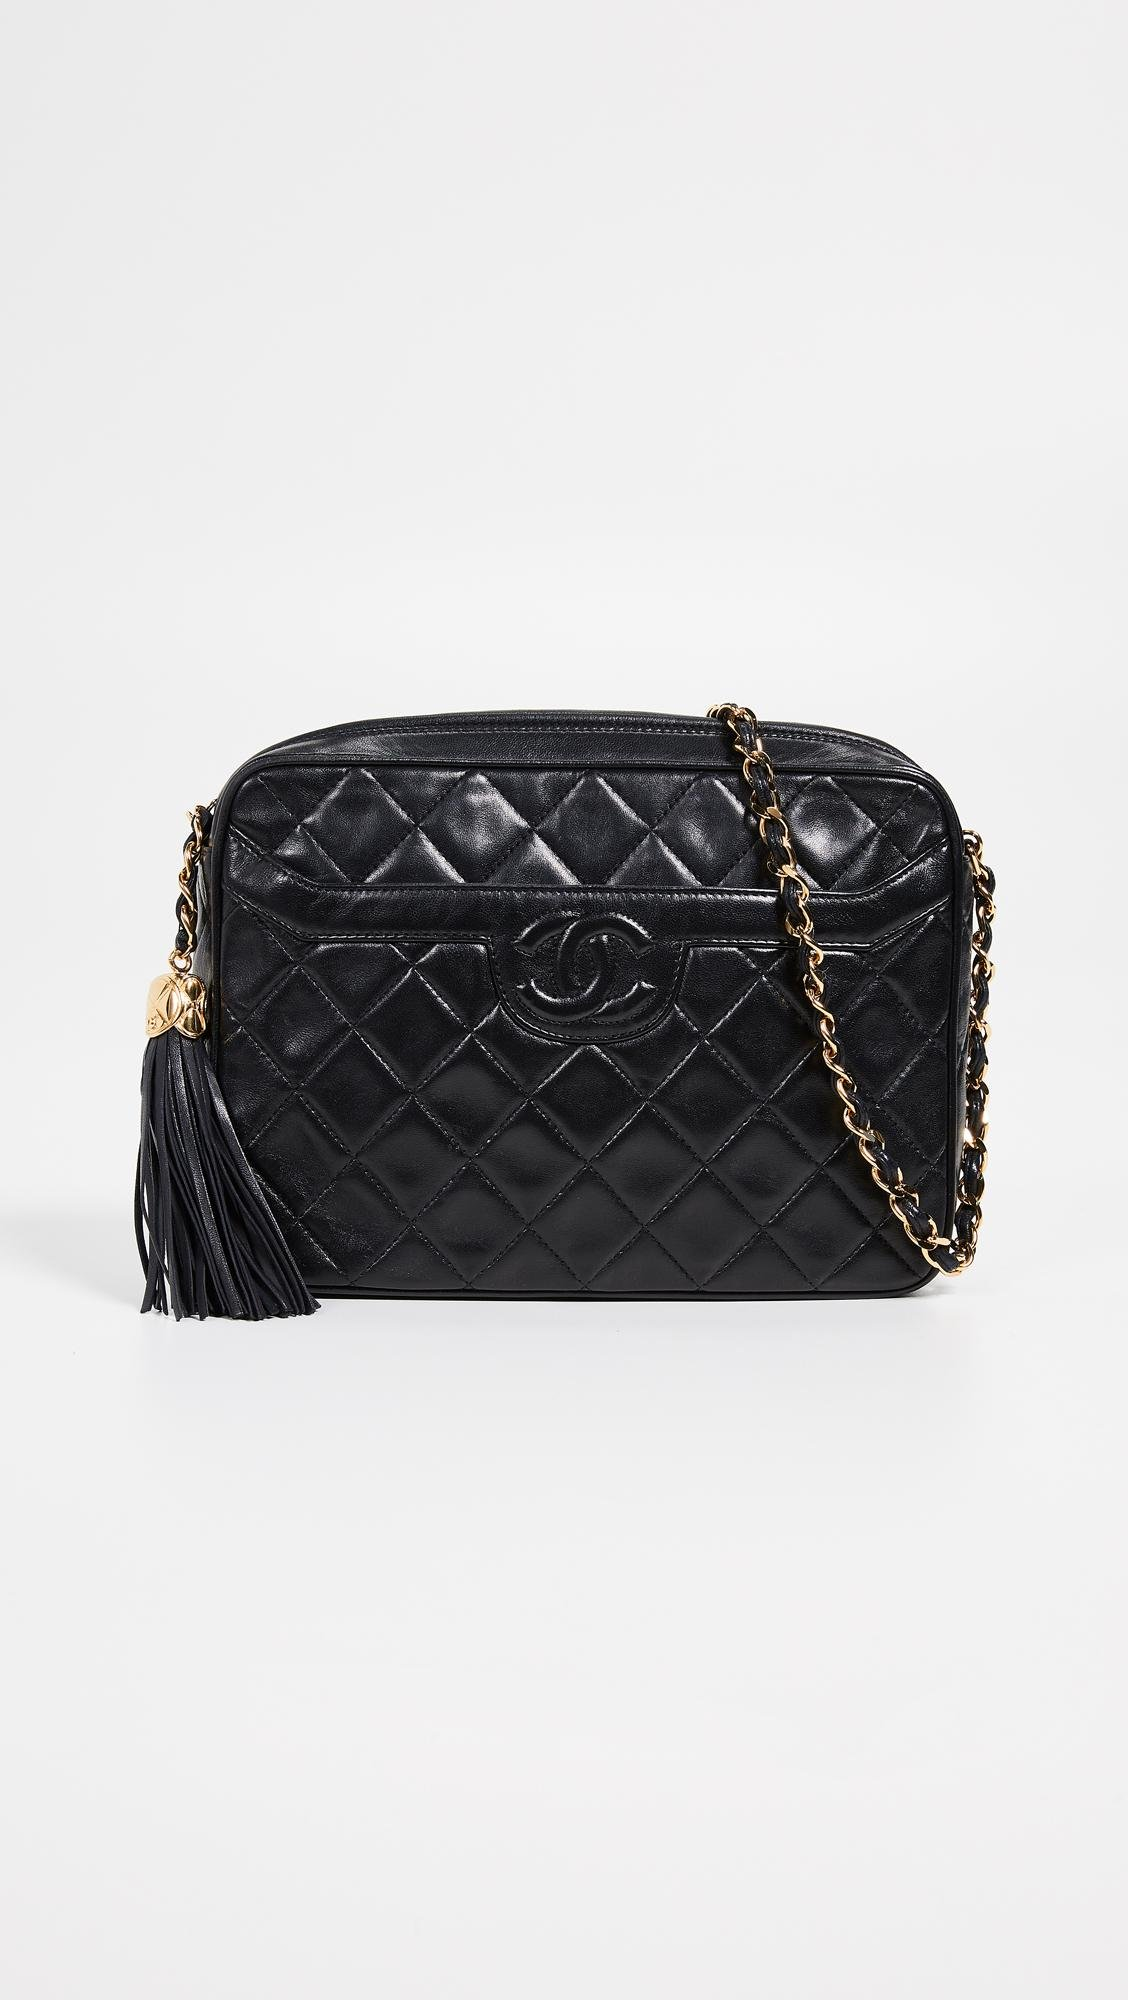 26b49293ddb What Goes Around Comes Around. Women s Black Chanel Medium Pocket Camera Bag